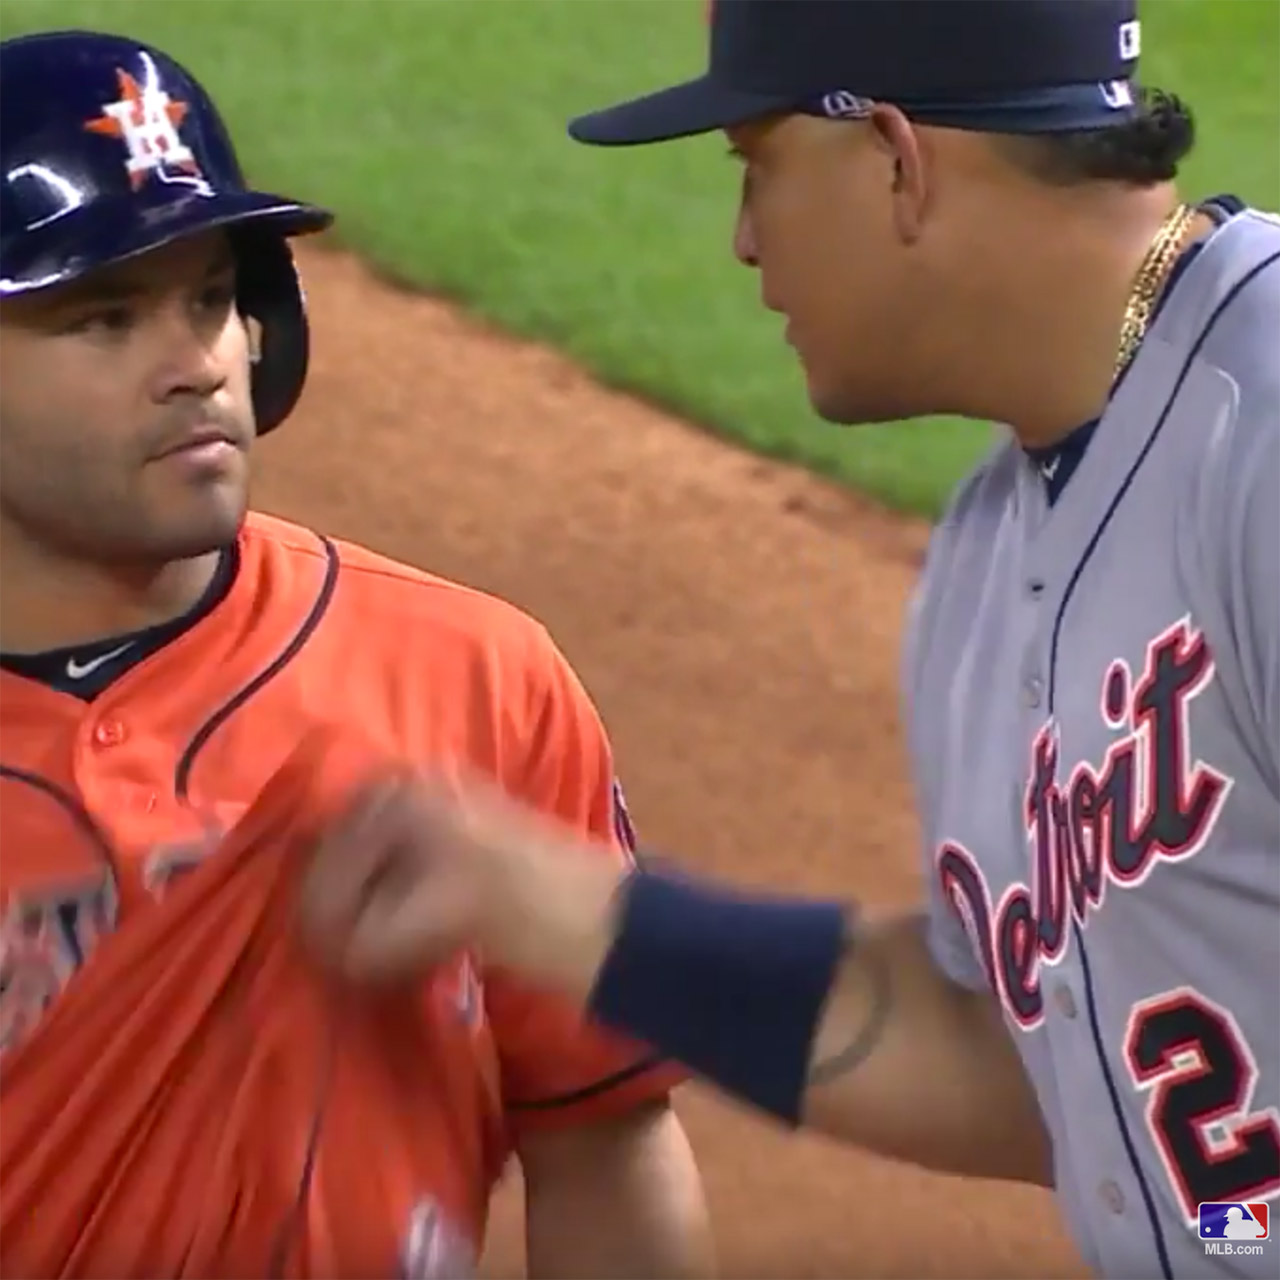 Tigers first baseman Miguel Cabrera messes with Astros All-Star Jose Altuve's shirt